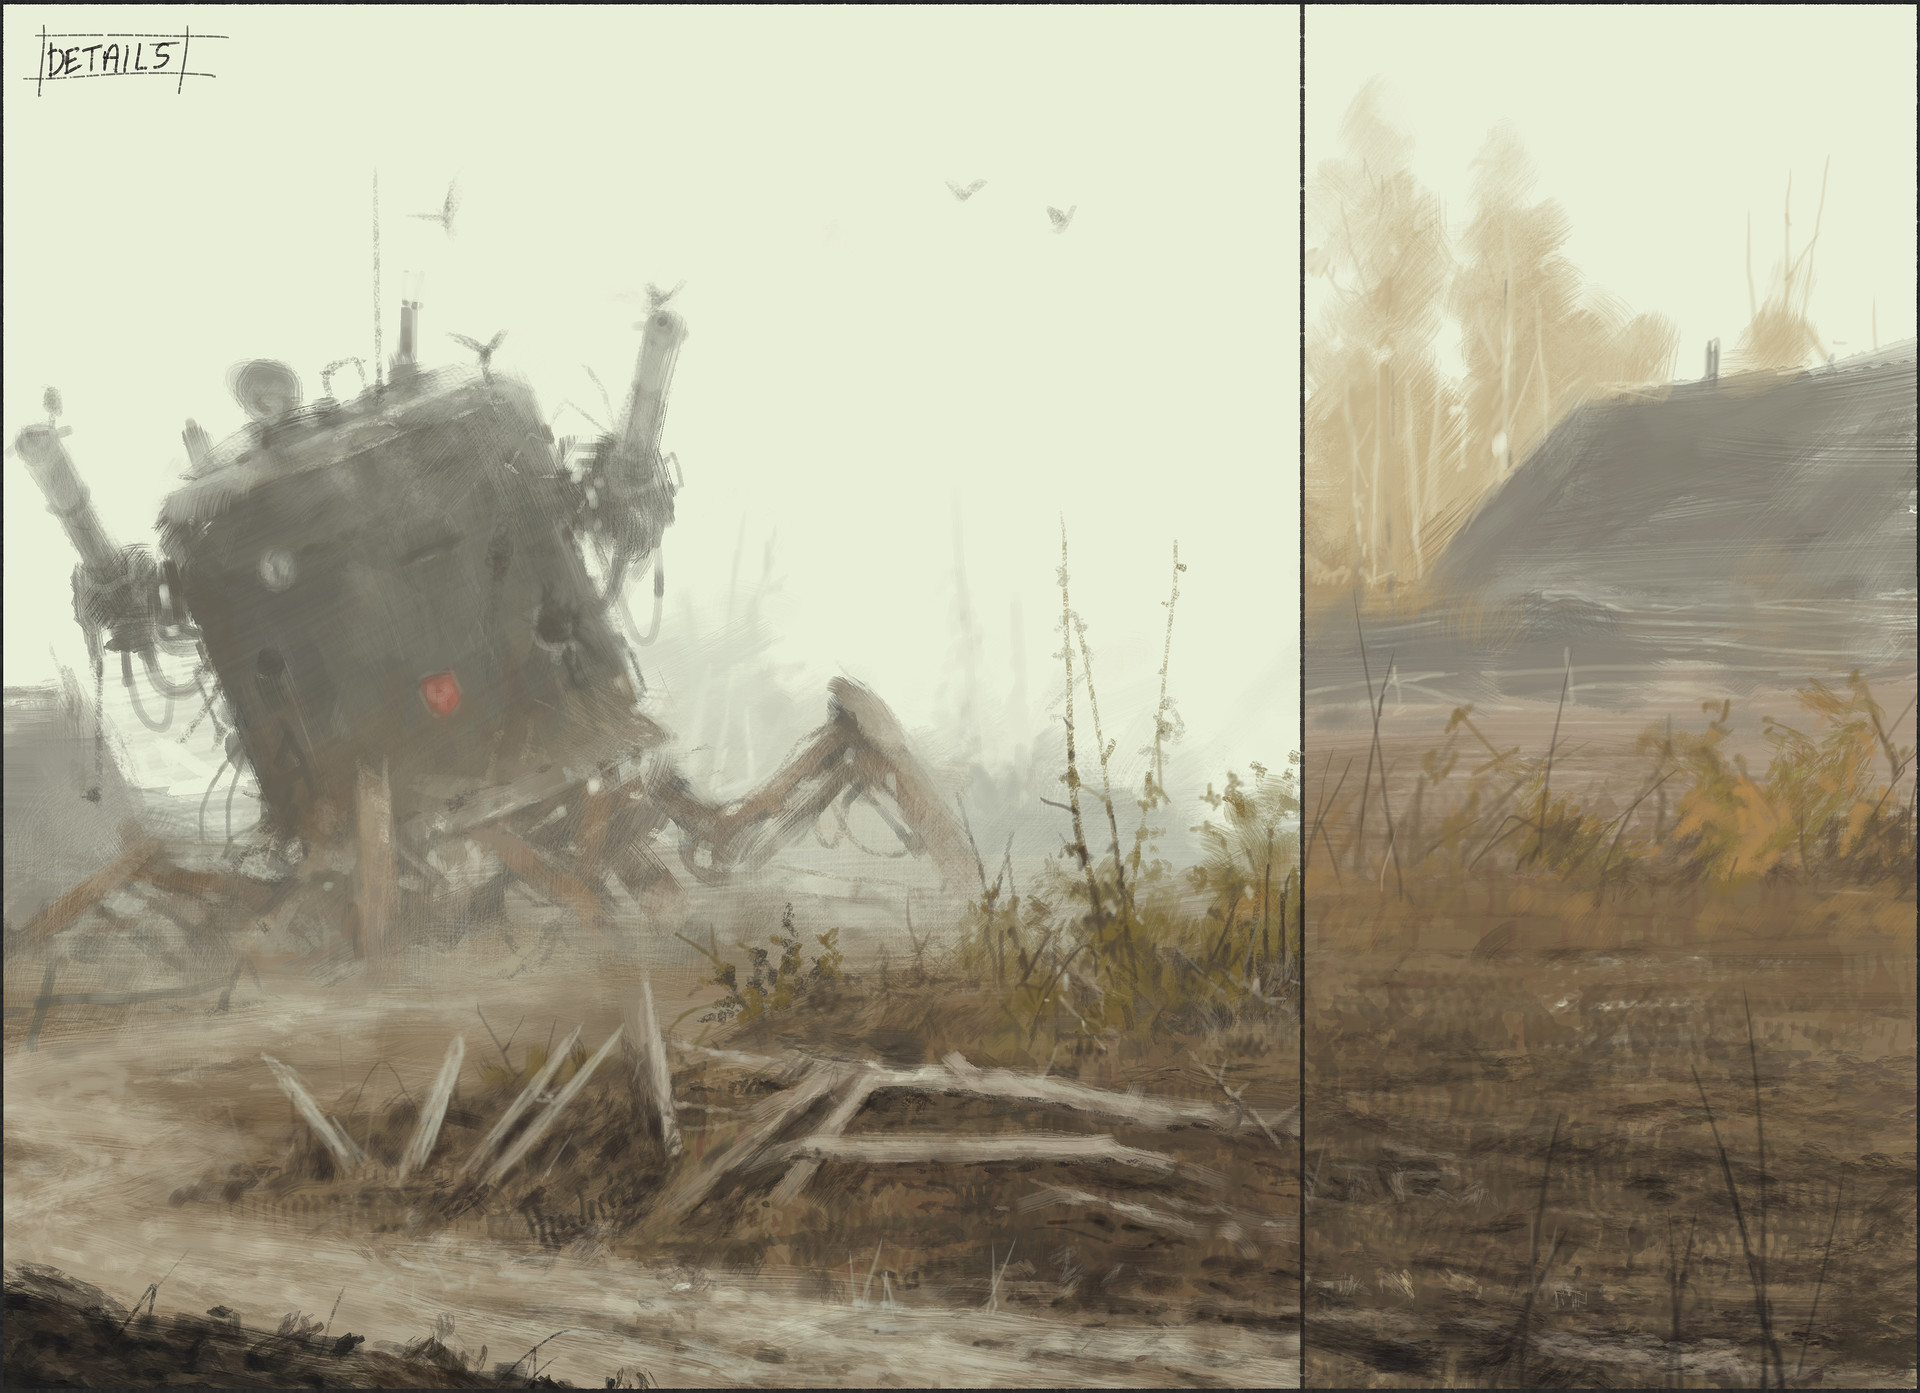 Jakub rozalski pride of glory process4